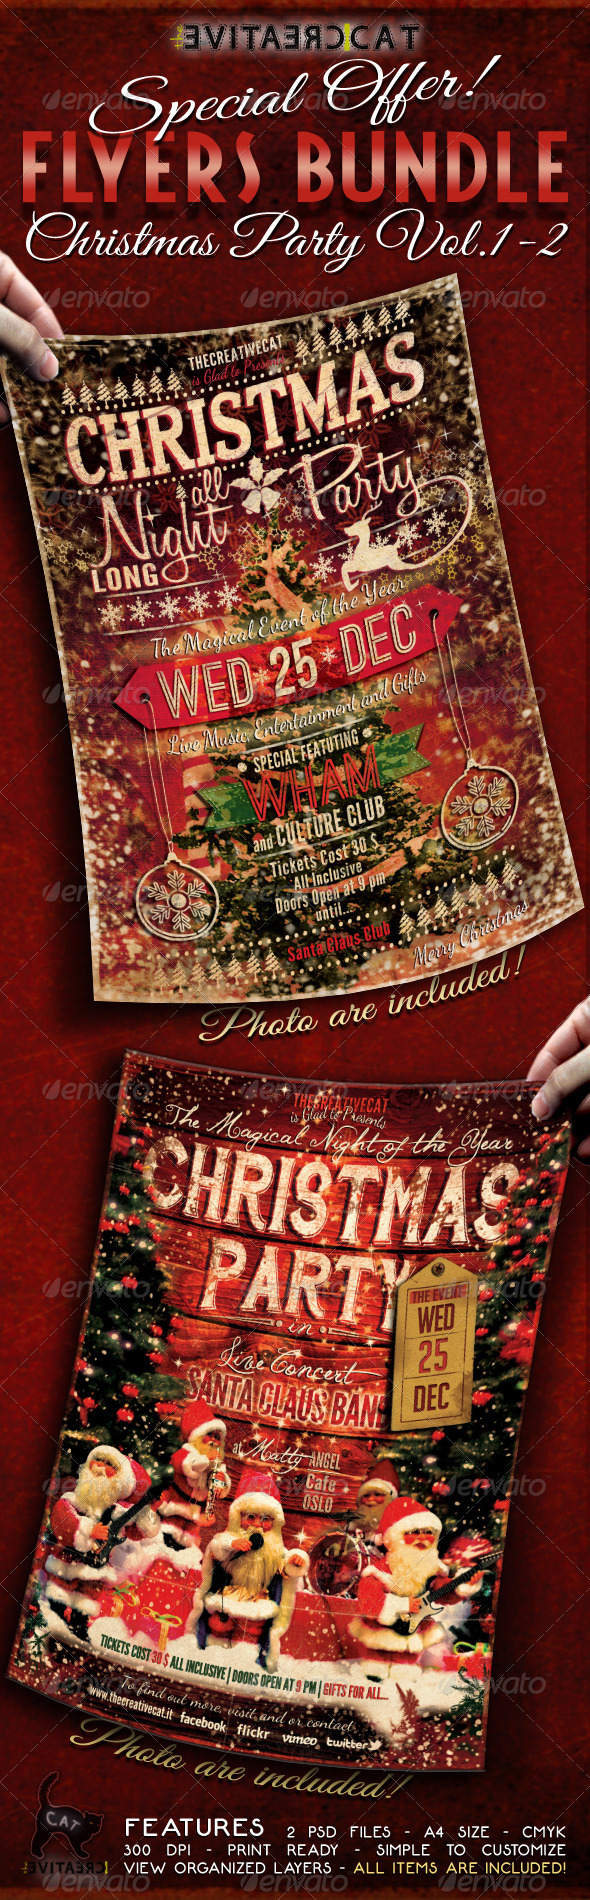 Christmas Party Flyer/Poster Bundle Vol. 1-2 - Events Flyers